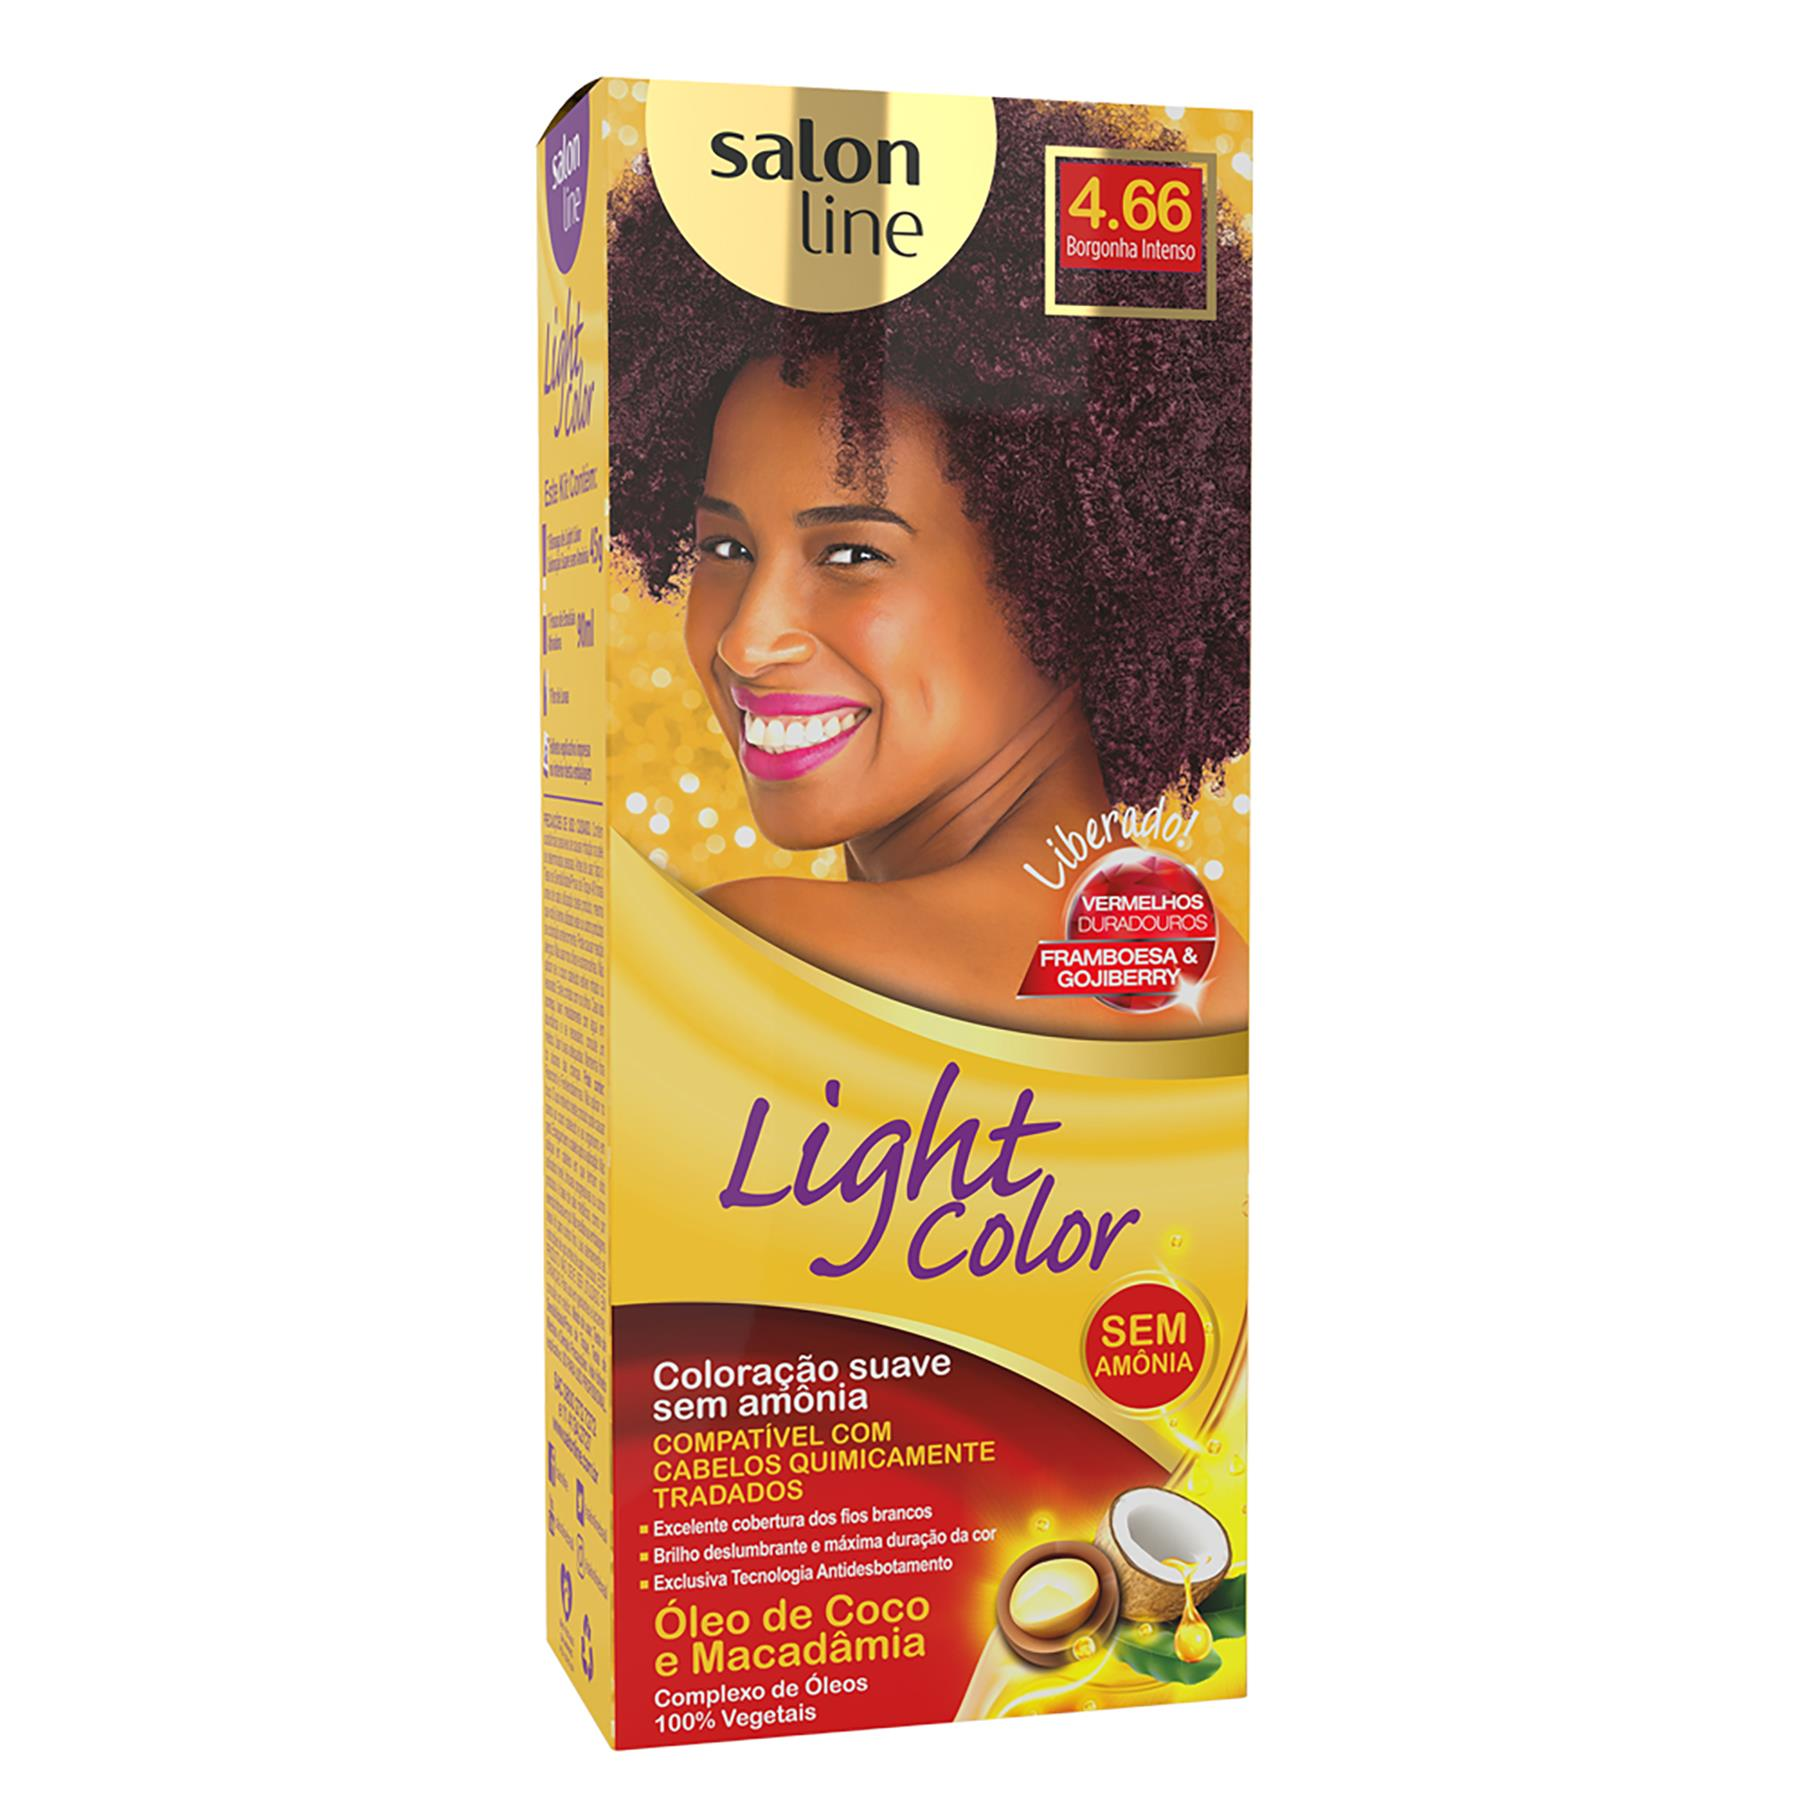 COLORAÇÃO BORGANHA INTENSO 4.66 - COLOR LIGHT SALON LINE